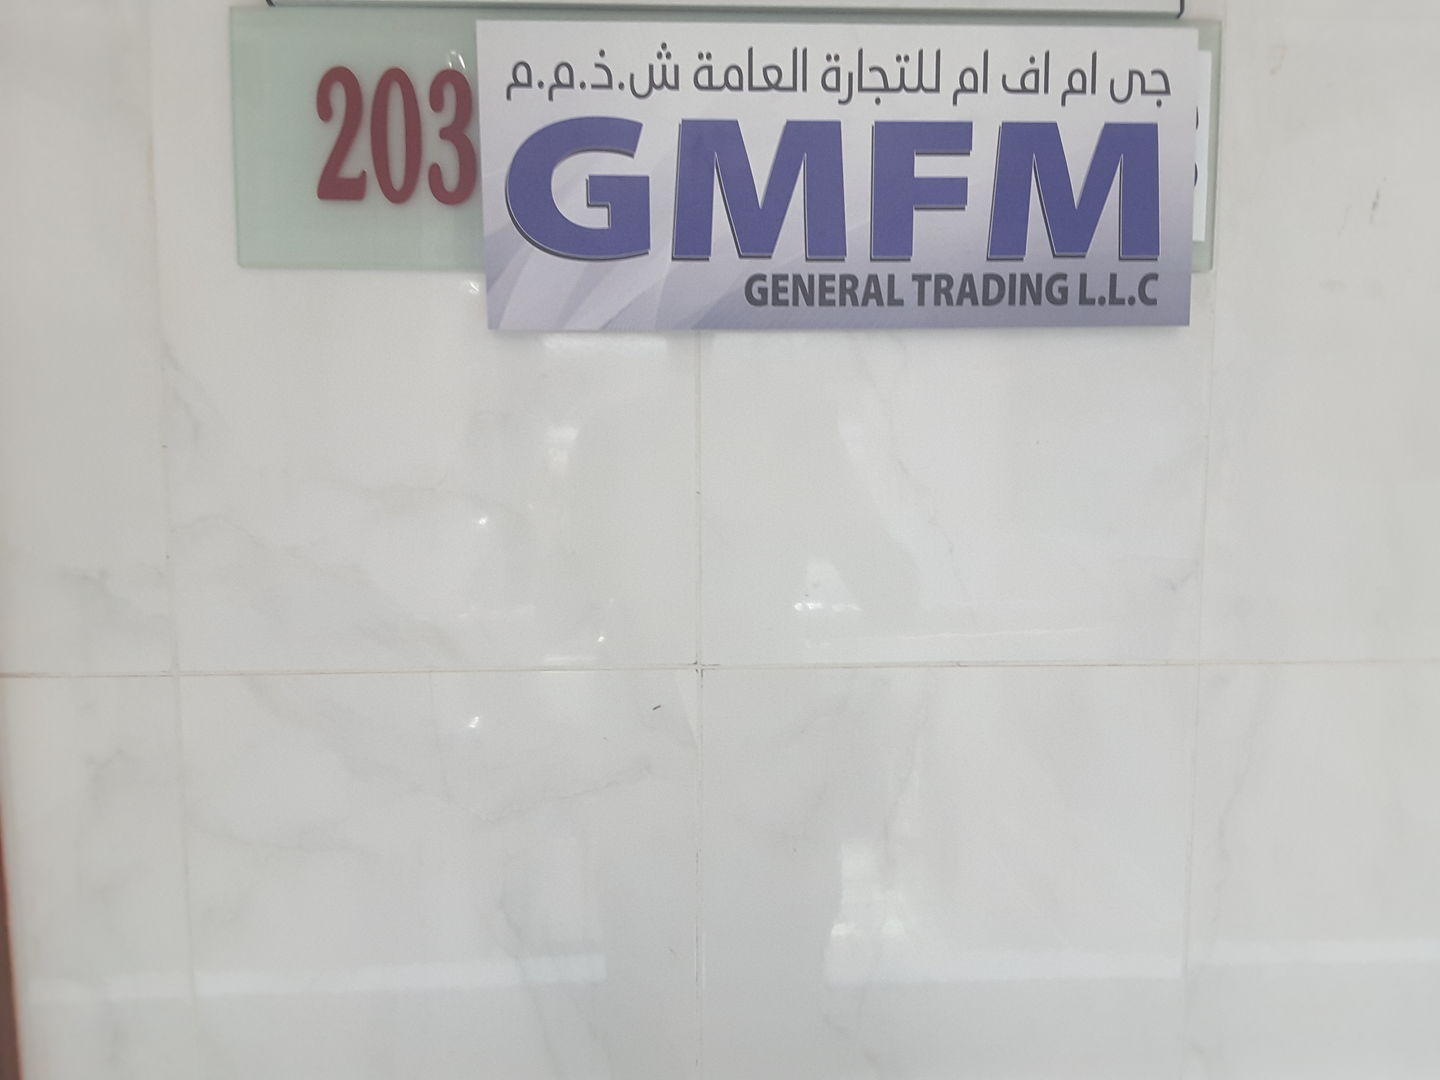 HiDubai-business-gmfm-general-trading-b2b-services-food-stuff-trading-riggat-al-buteen-dubai-2